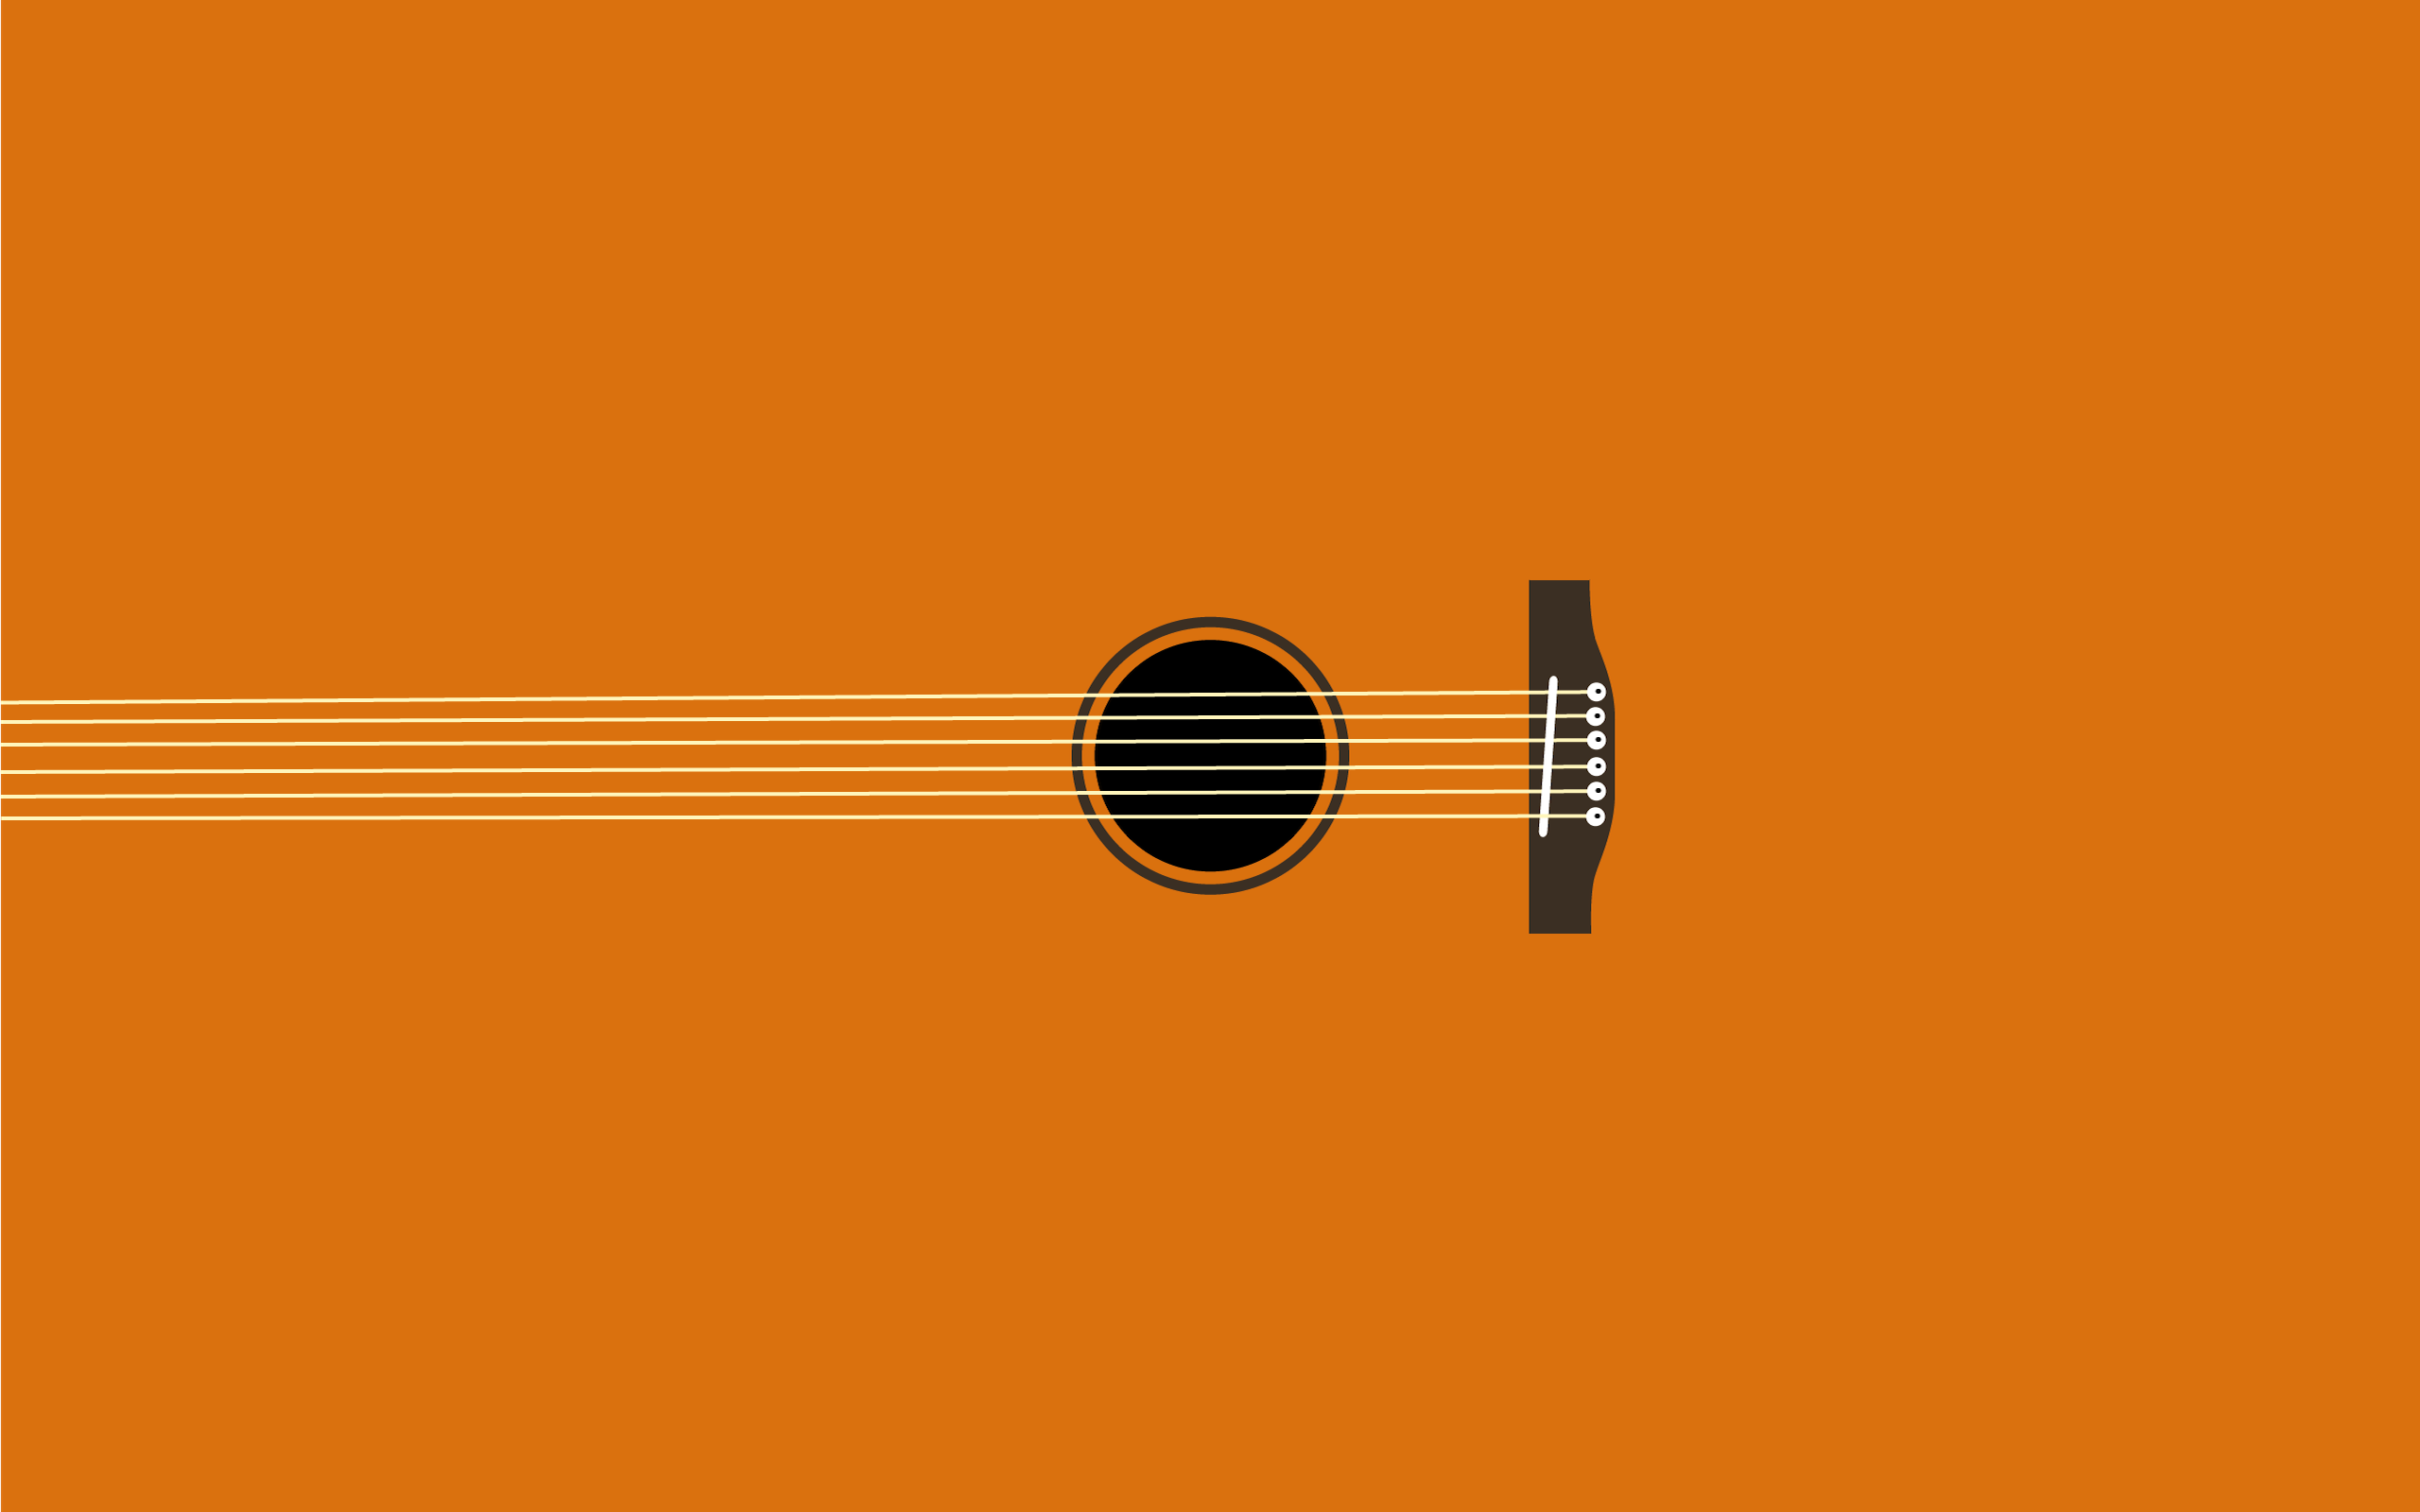 Agx31 acoustic guitar wallpaper 2560x1600 px download for Music minimal art